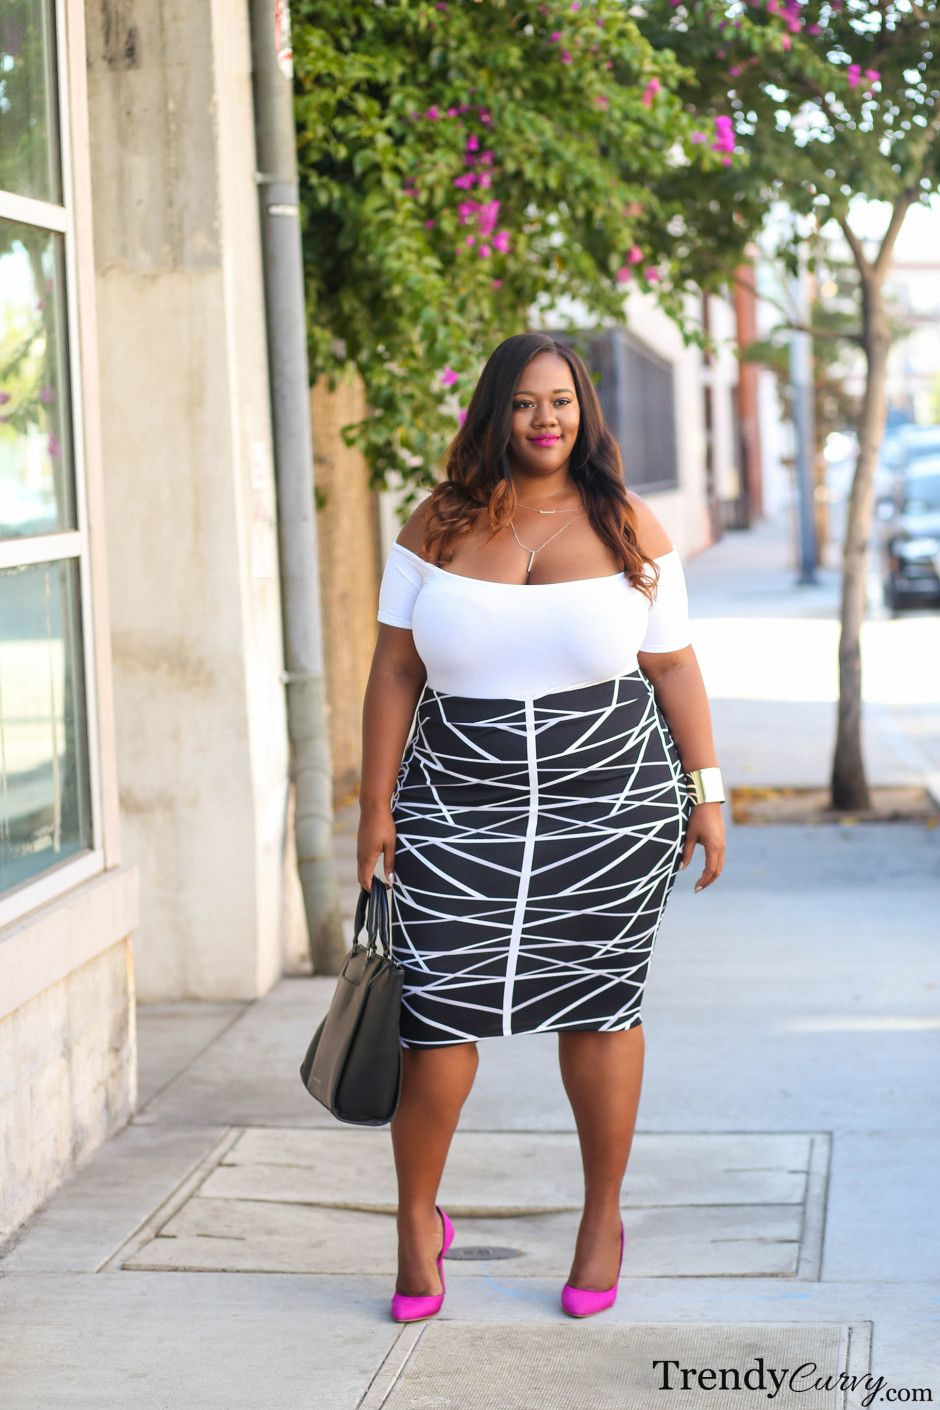 Plus size fashion for women beauty comes in many forms